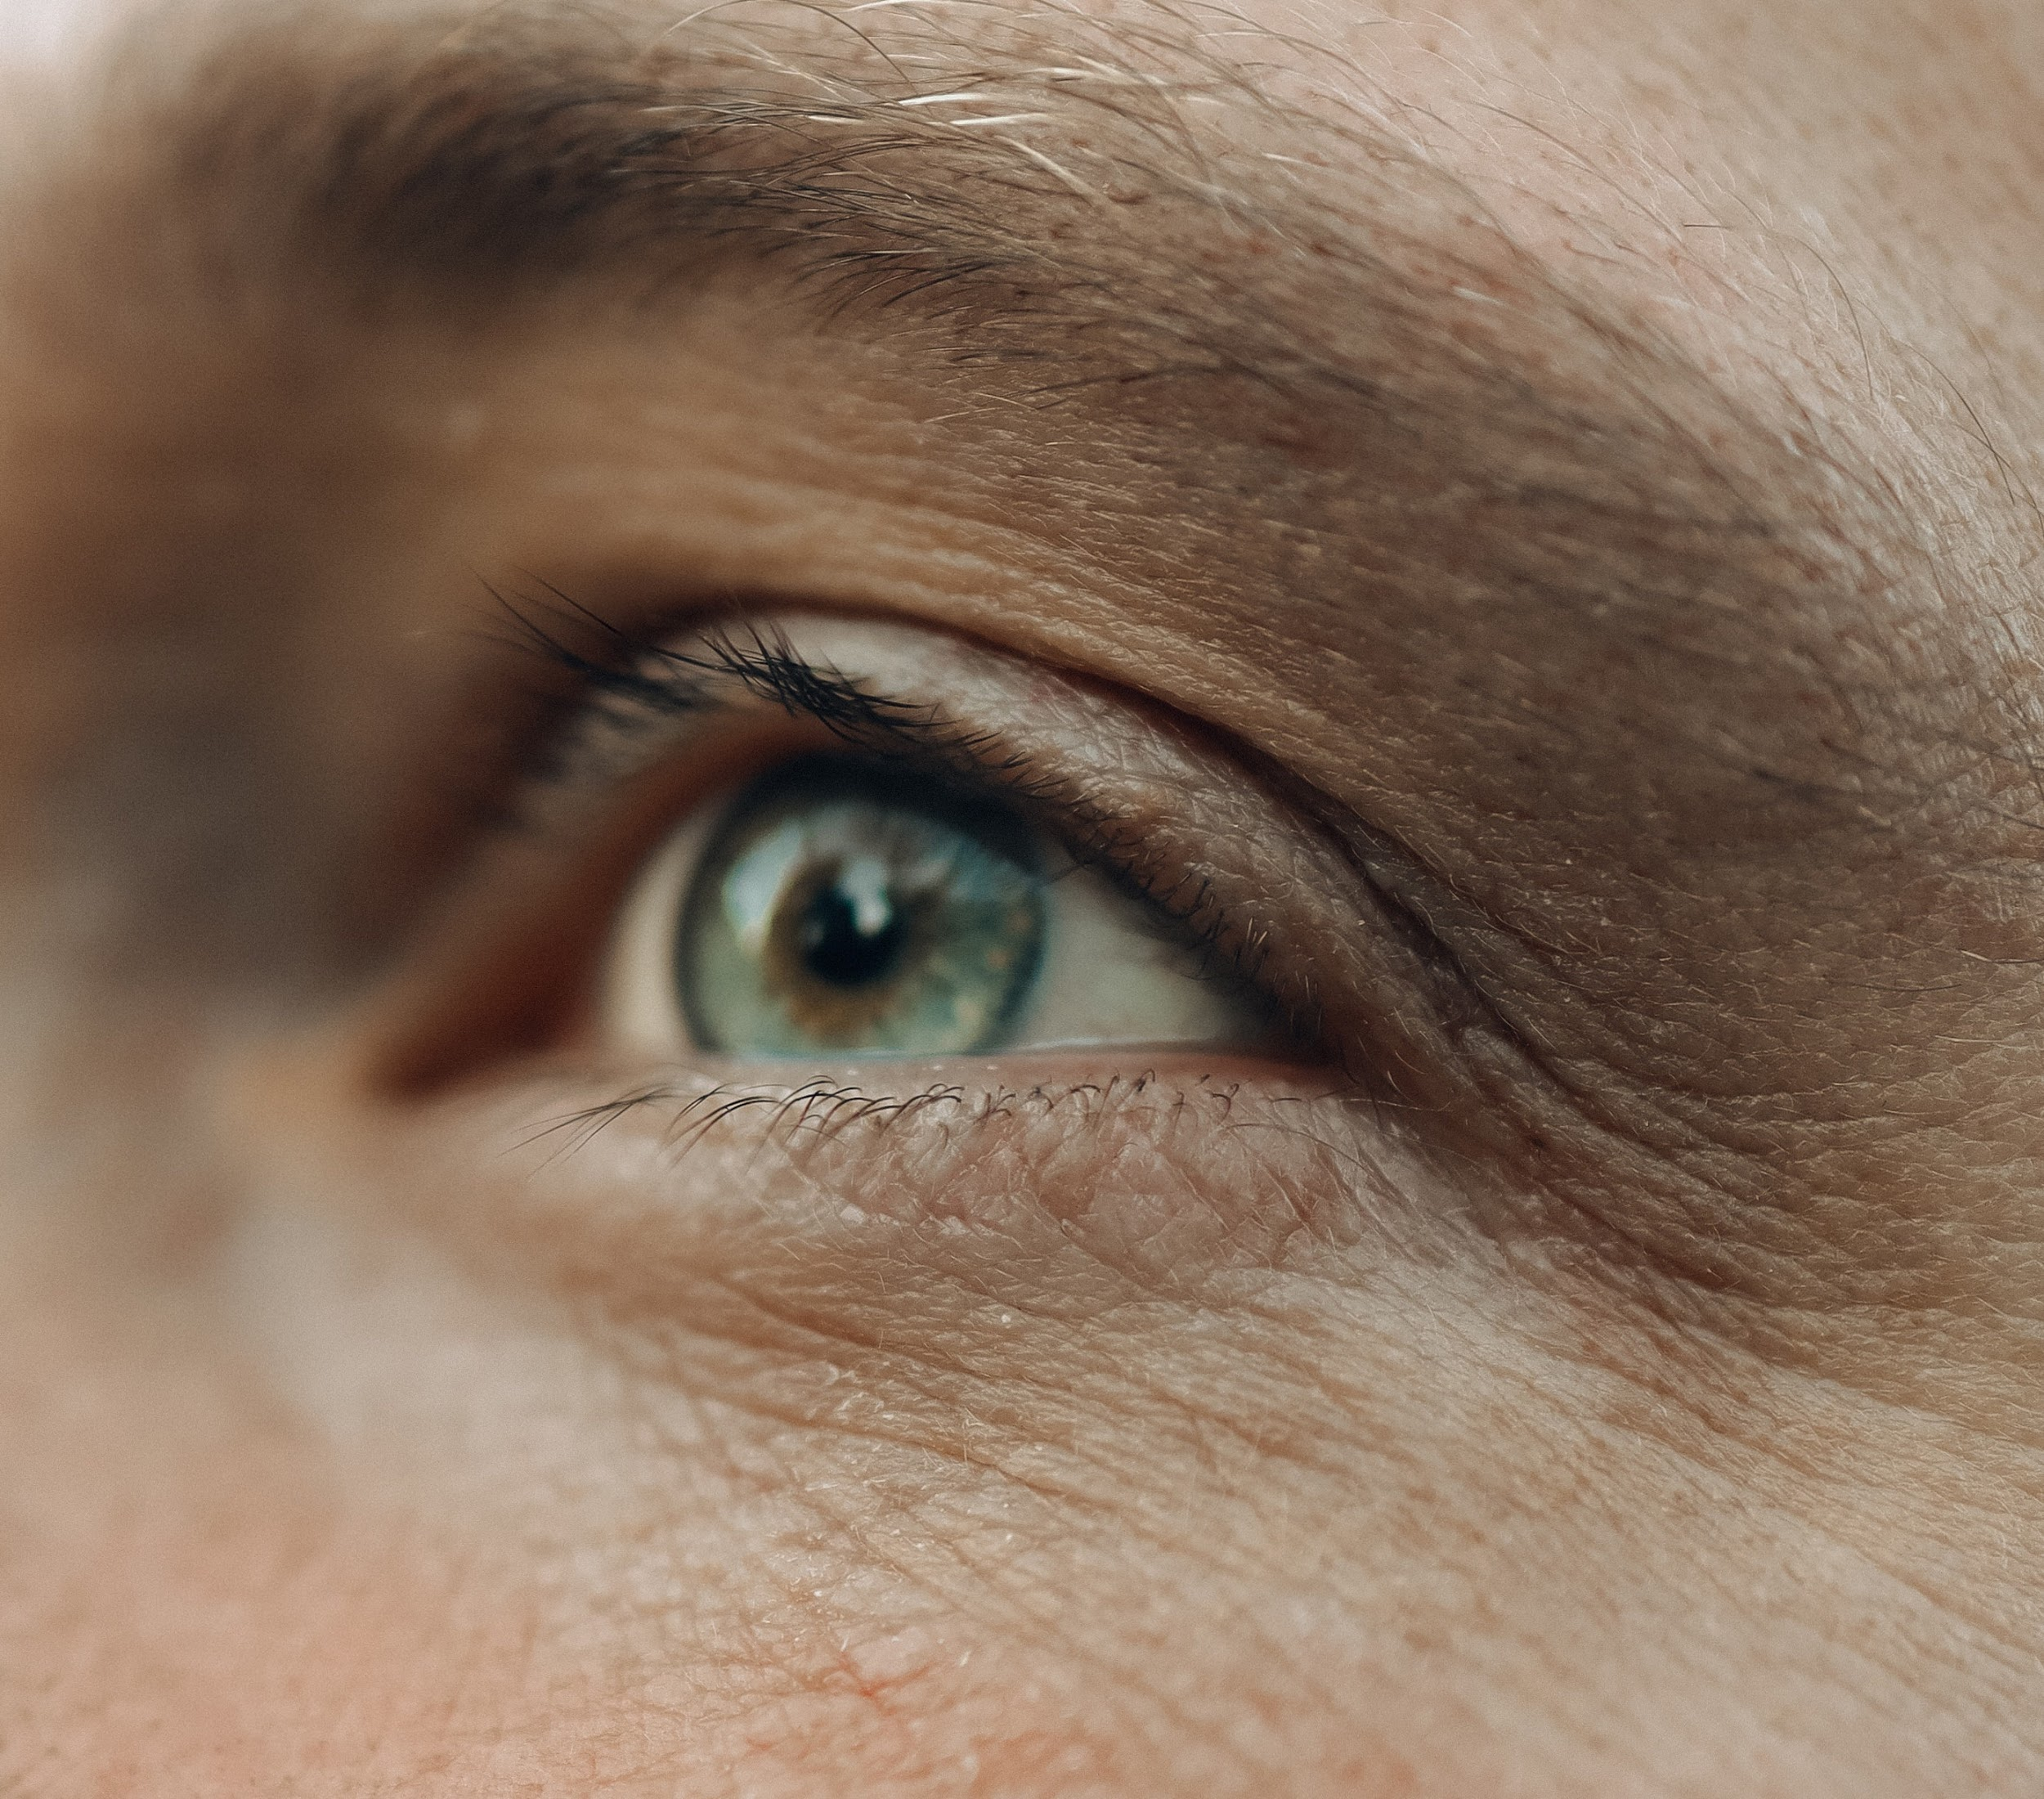 Close-up of wrinkled eye (From:Pexels).